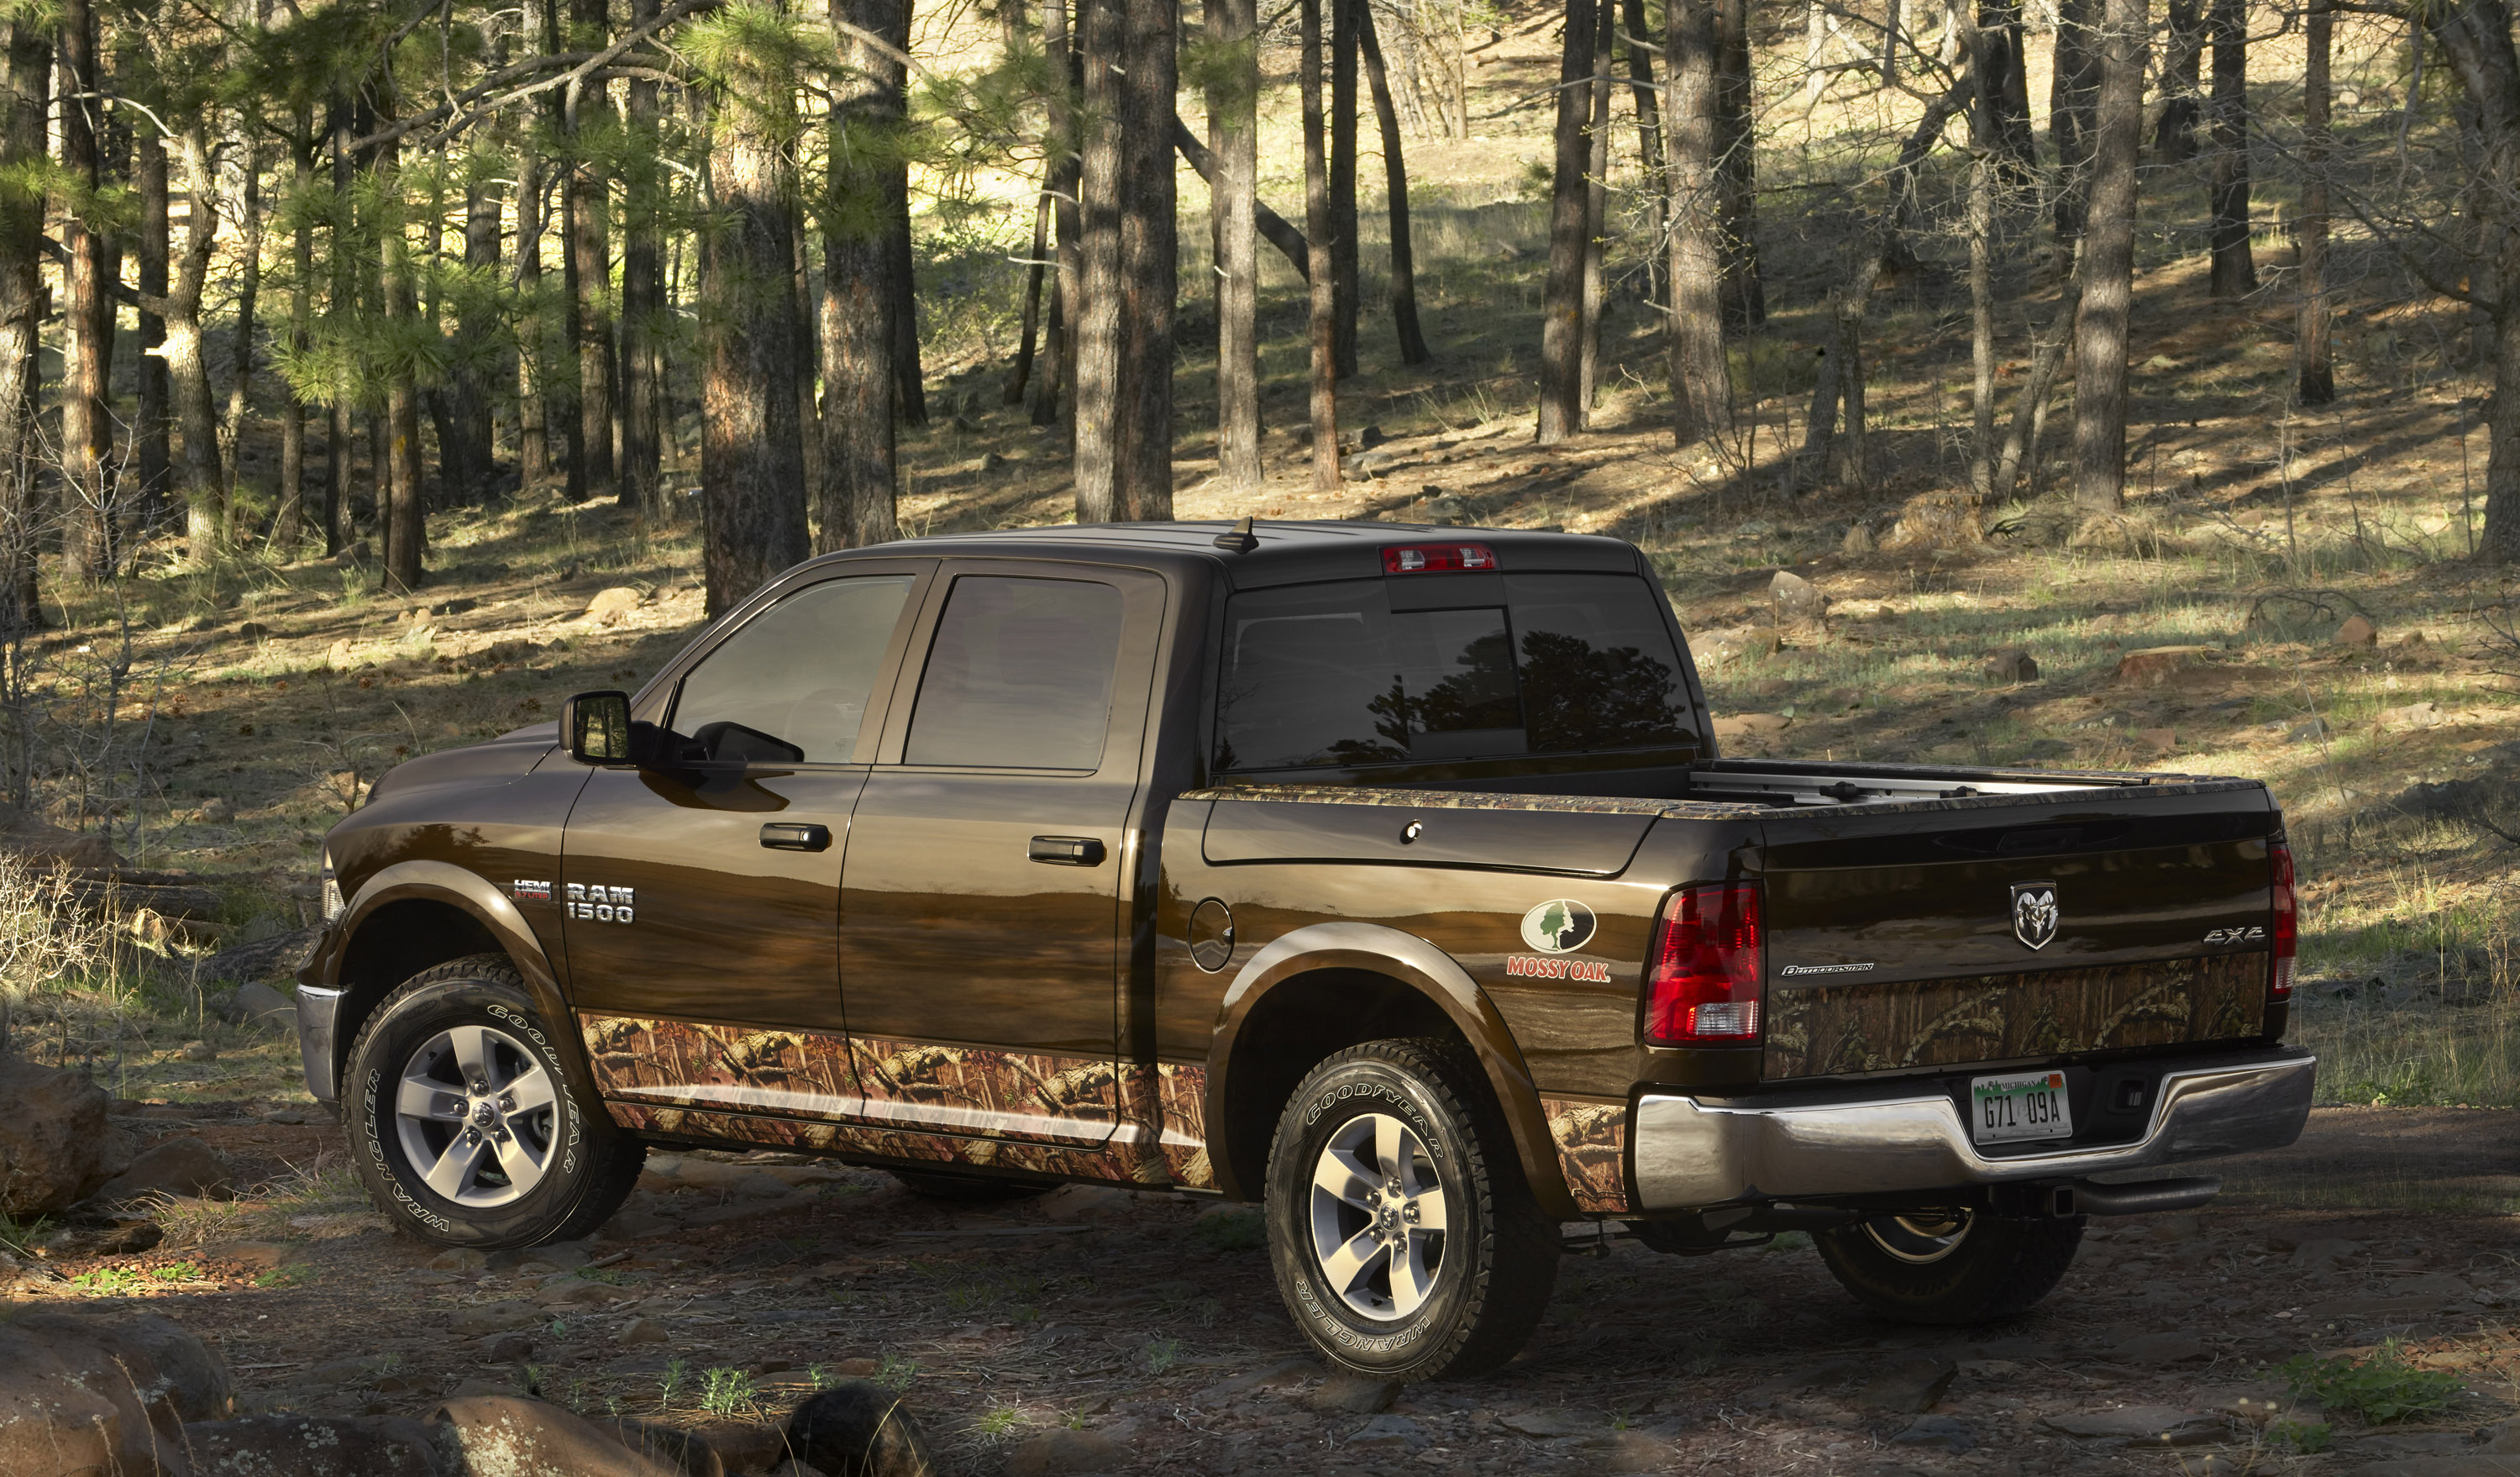 2014 Dodge Ram 1500 Mossy Oak Edition - HD Pictures @ carsinvasion.com